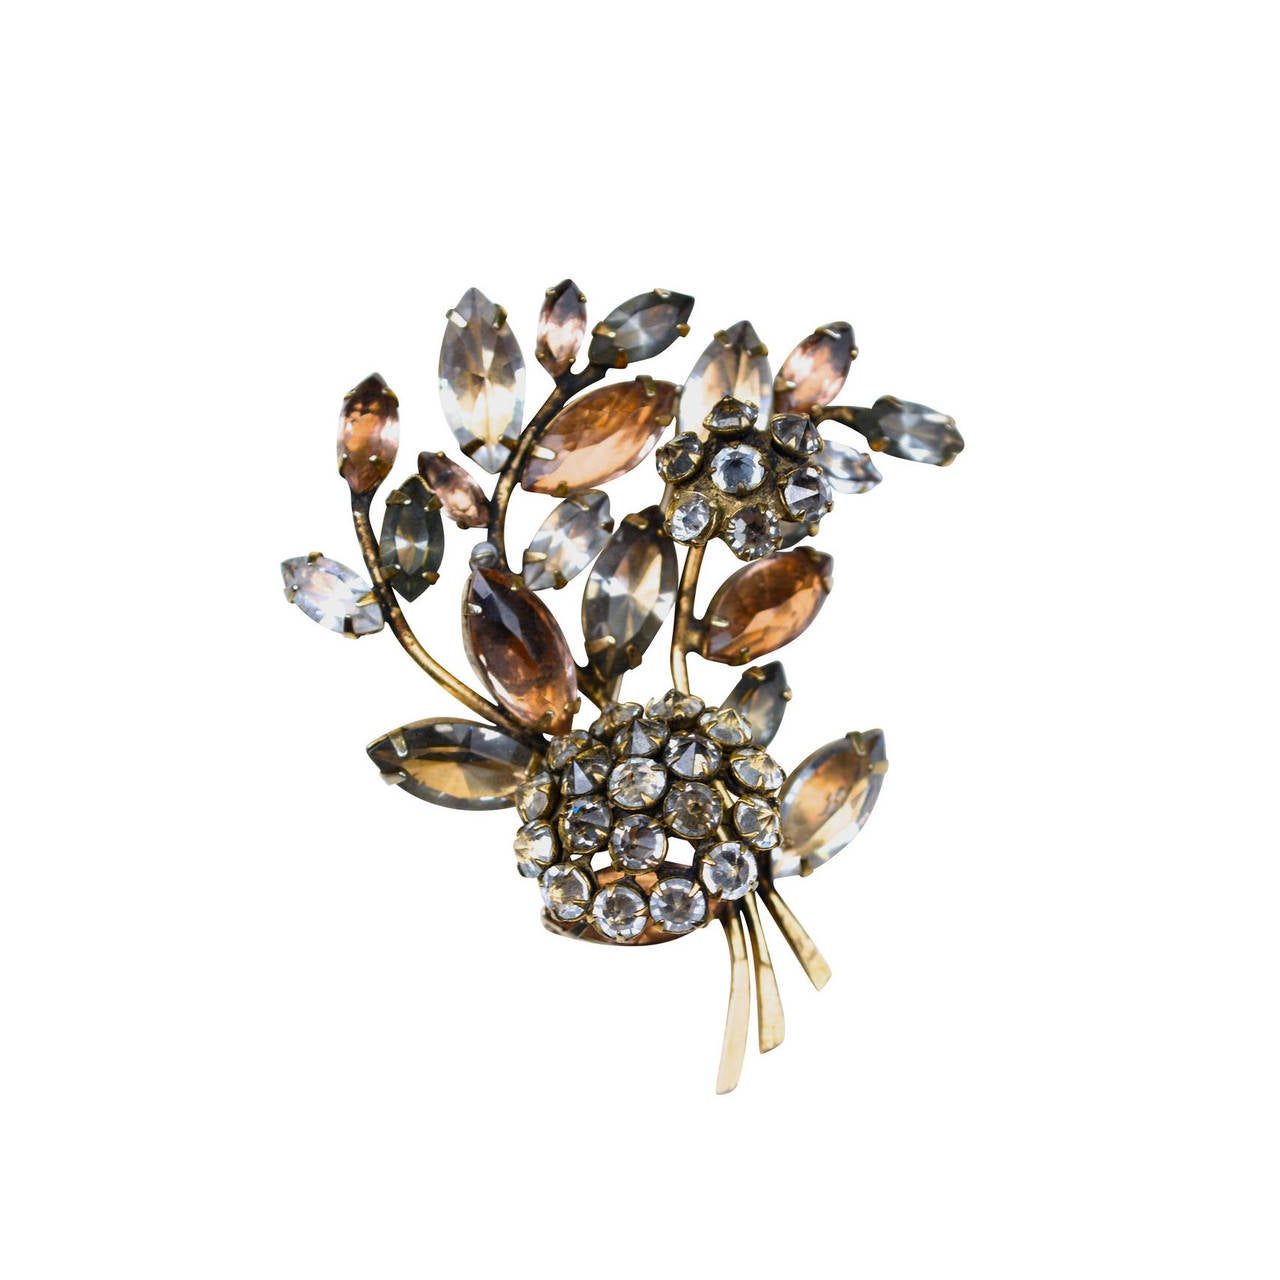 Schreiner Trembling Flower Brooch At 1stdibs. Golden Stud Earrings. Layered Engagement Rings. Bangle Bracelet. Boy Gold Pendant. Bracelet Necklace. Gold And Diamond Band. Kay Jewelers Stud Earrings. Beaded Gold Jewellery